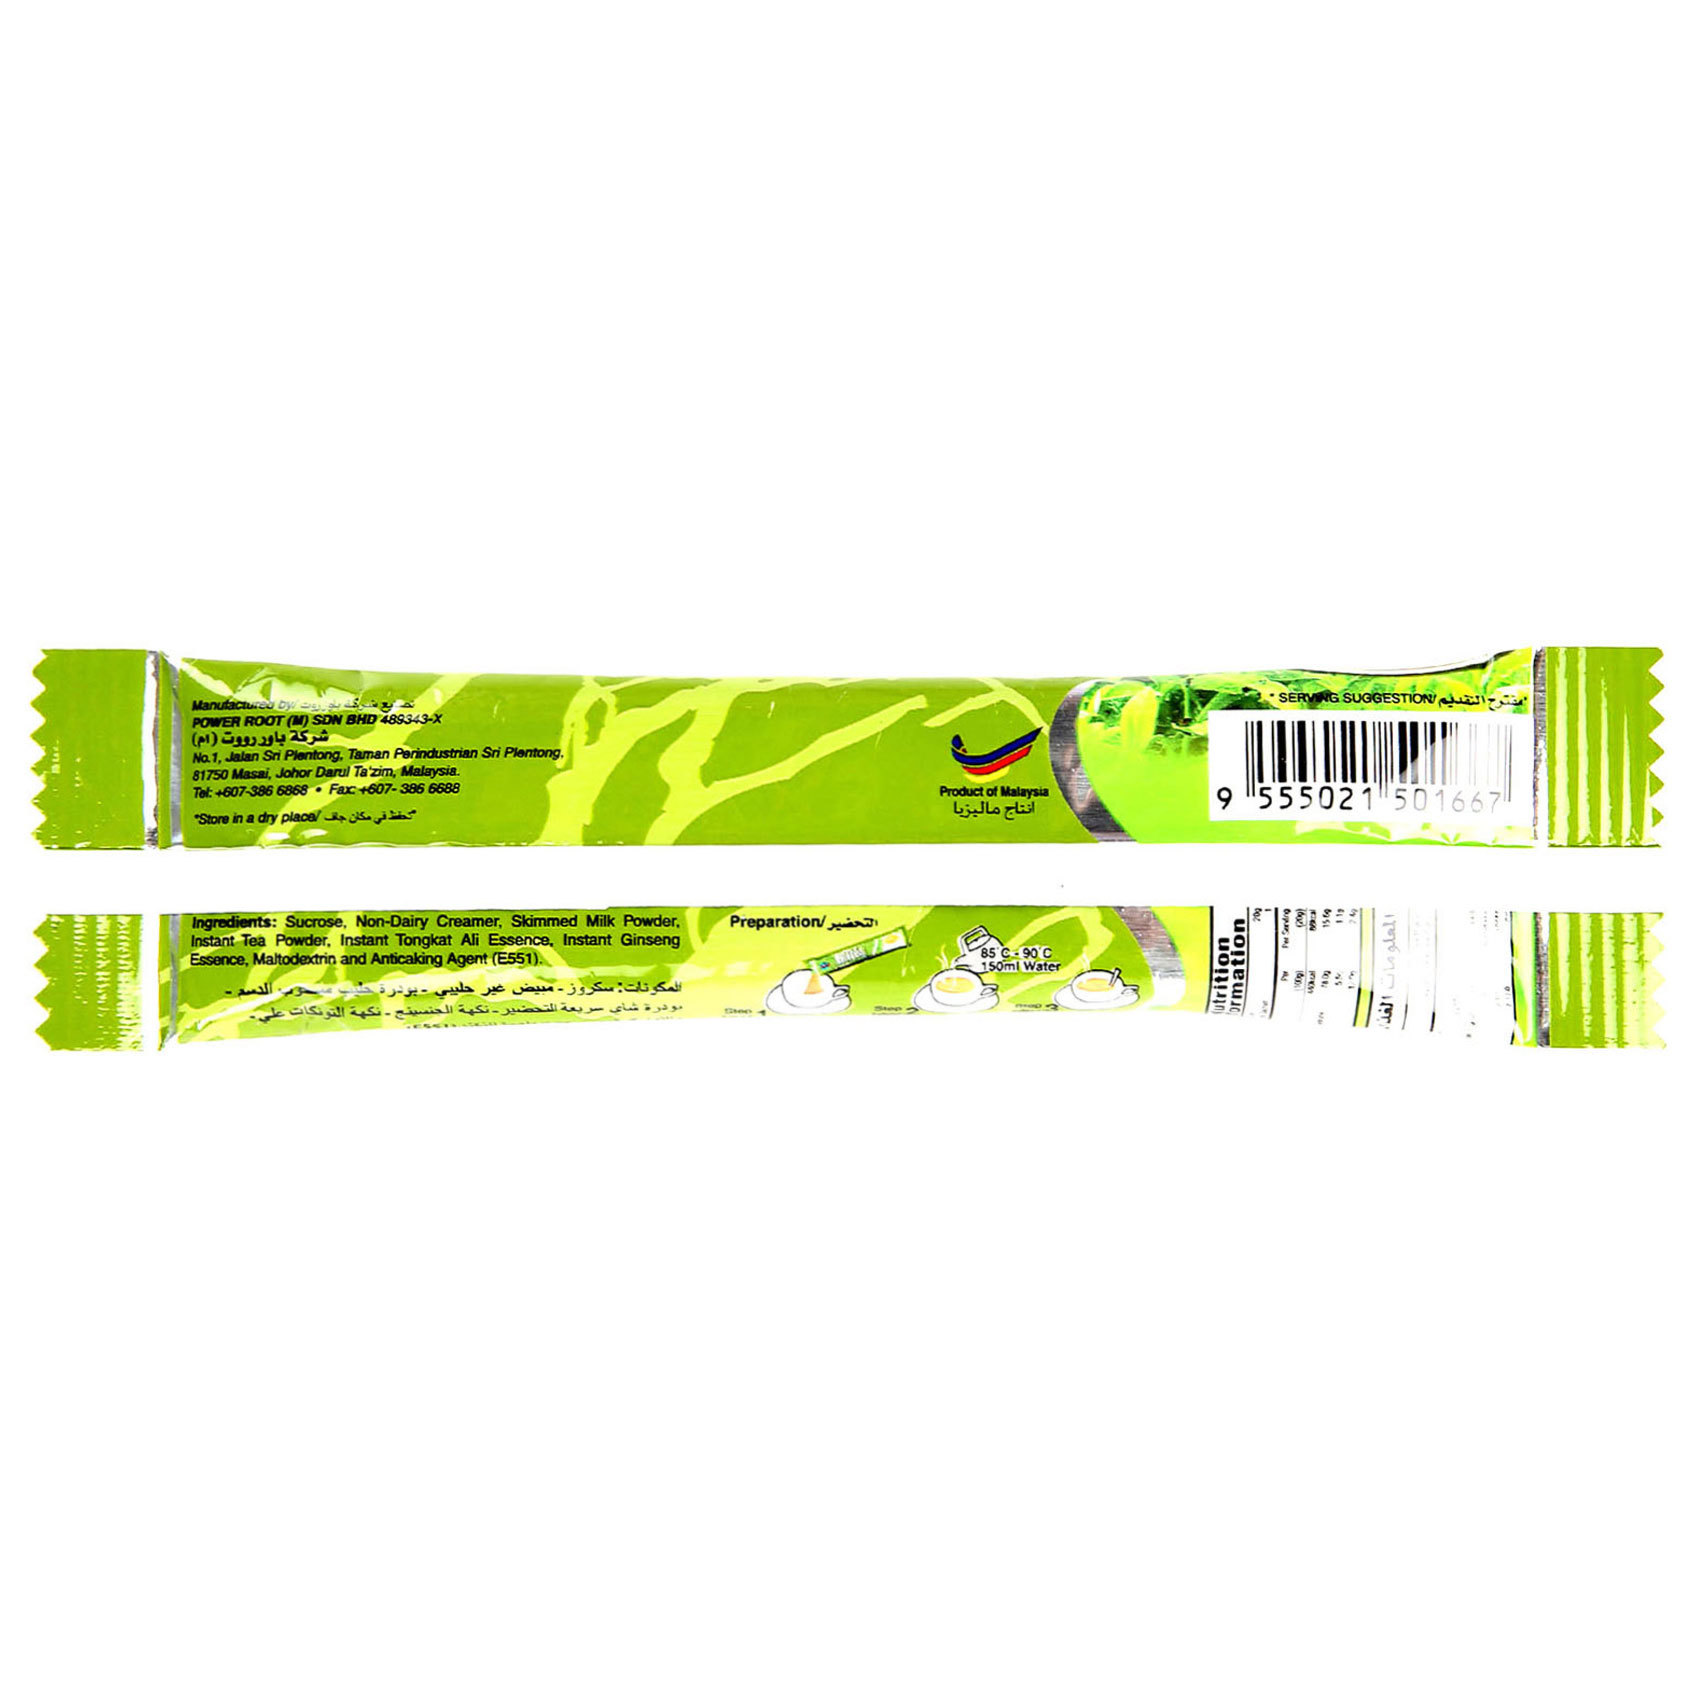 POWER ROOT PERLCAFE 5 IN 1 20G